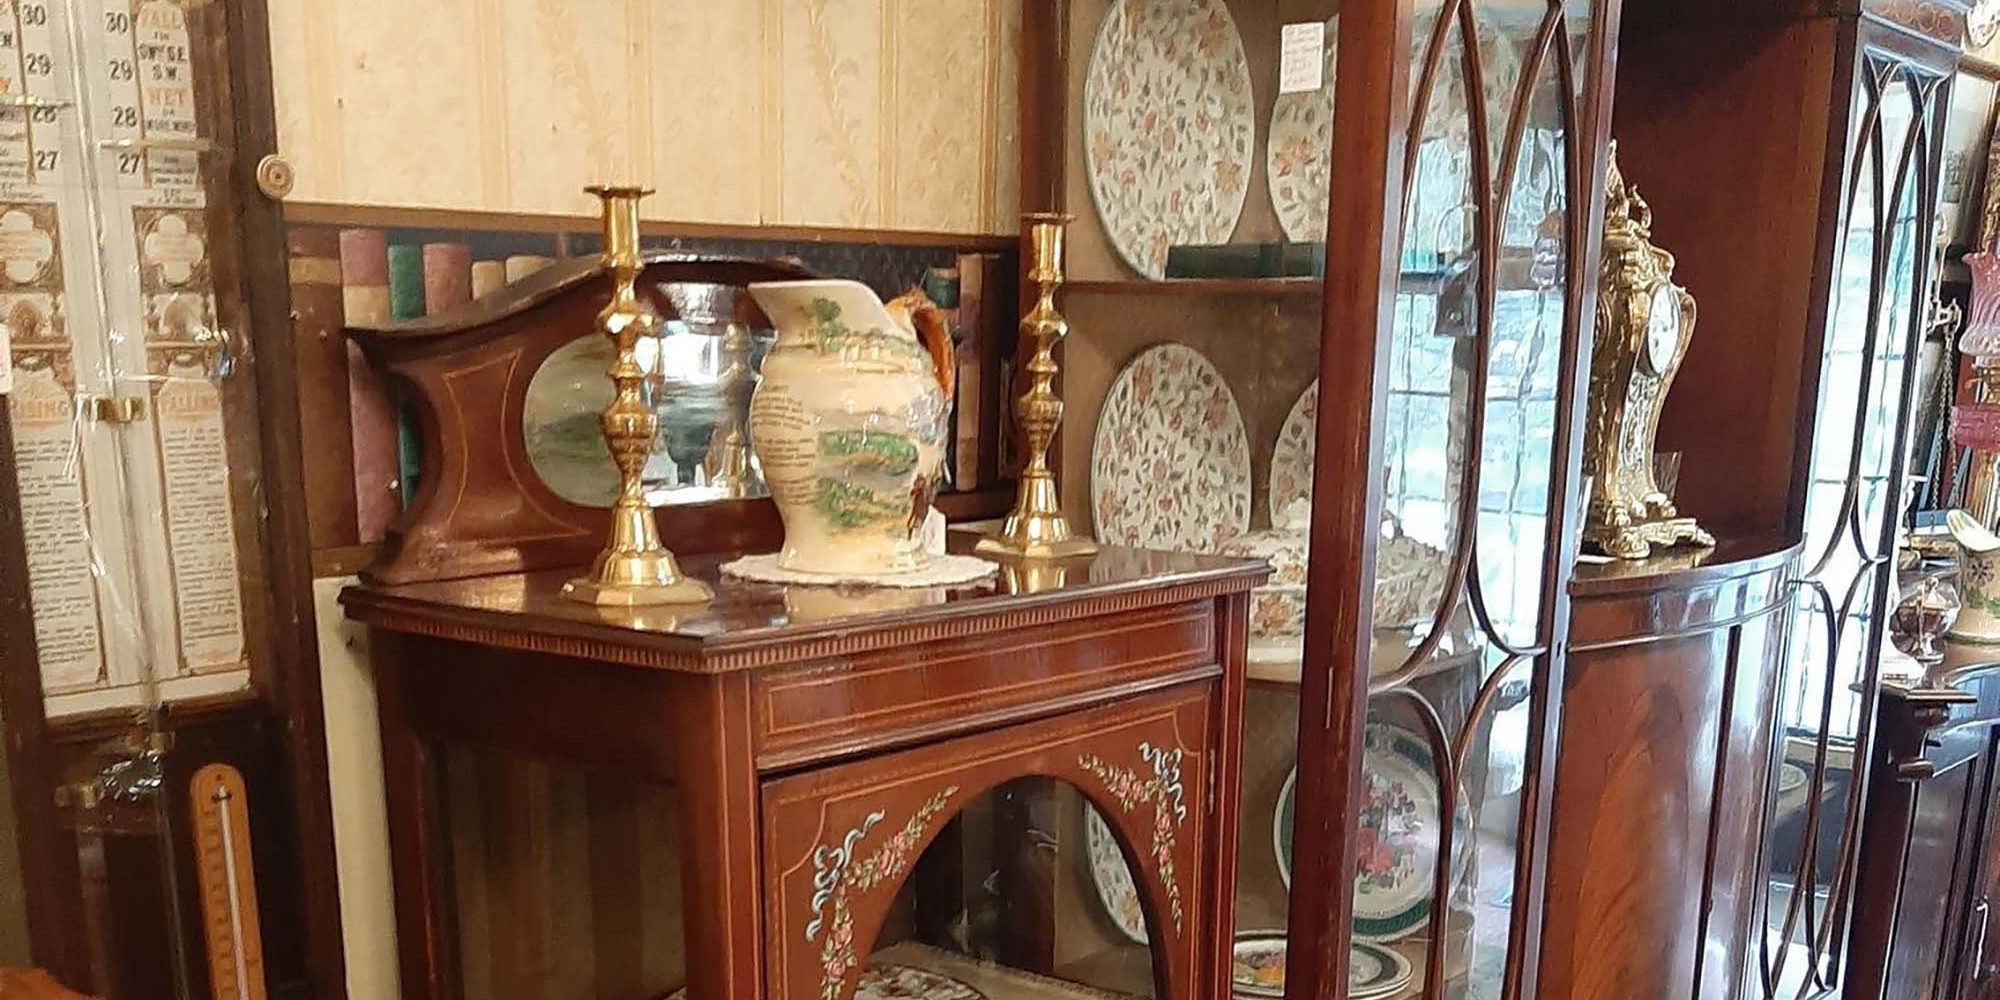 Antiques centre in Glaslough, Monaghan